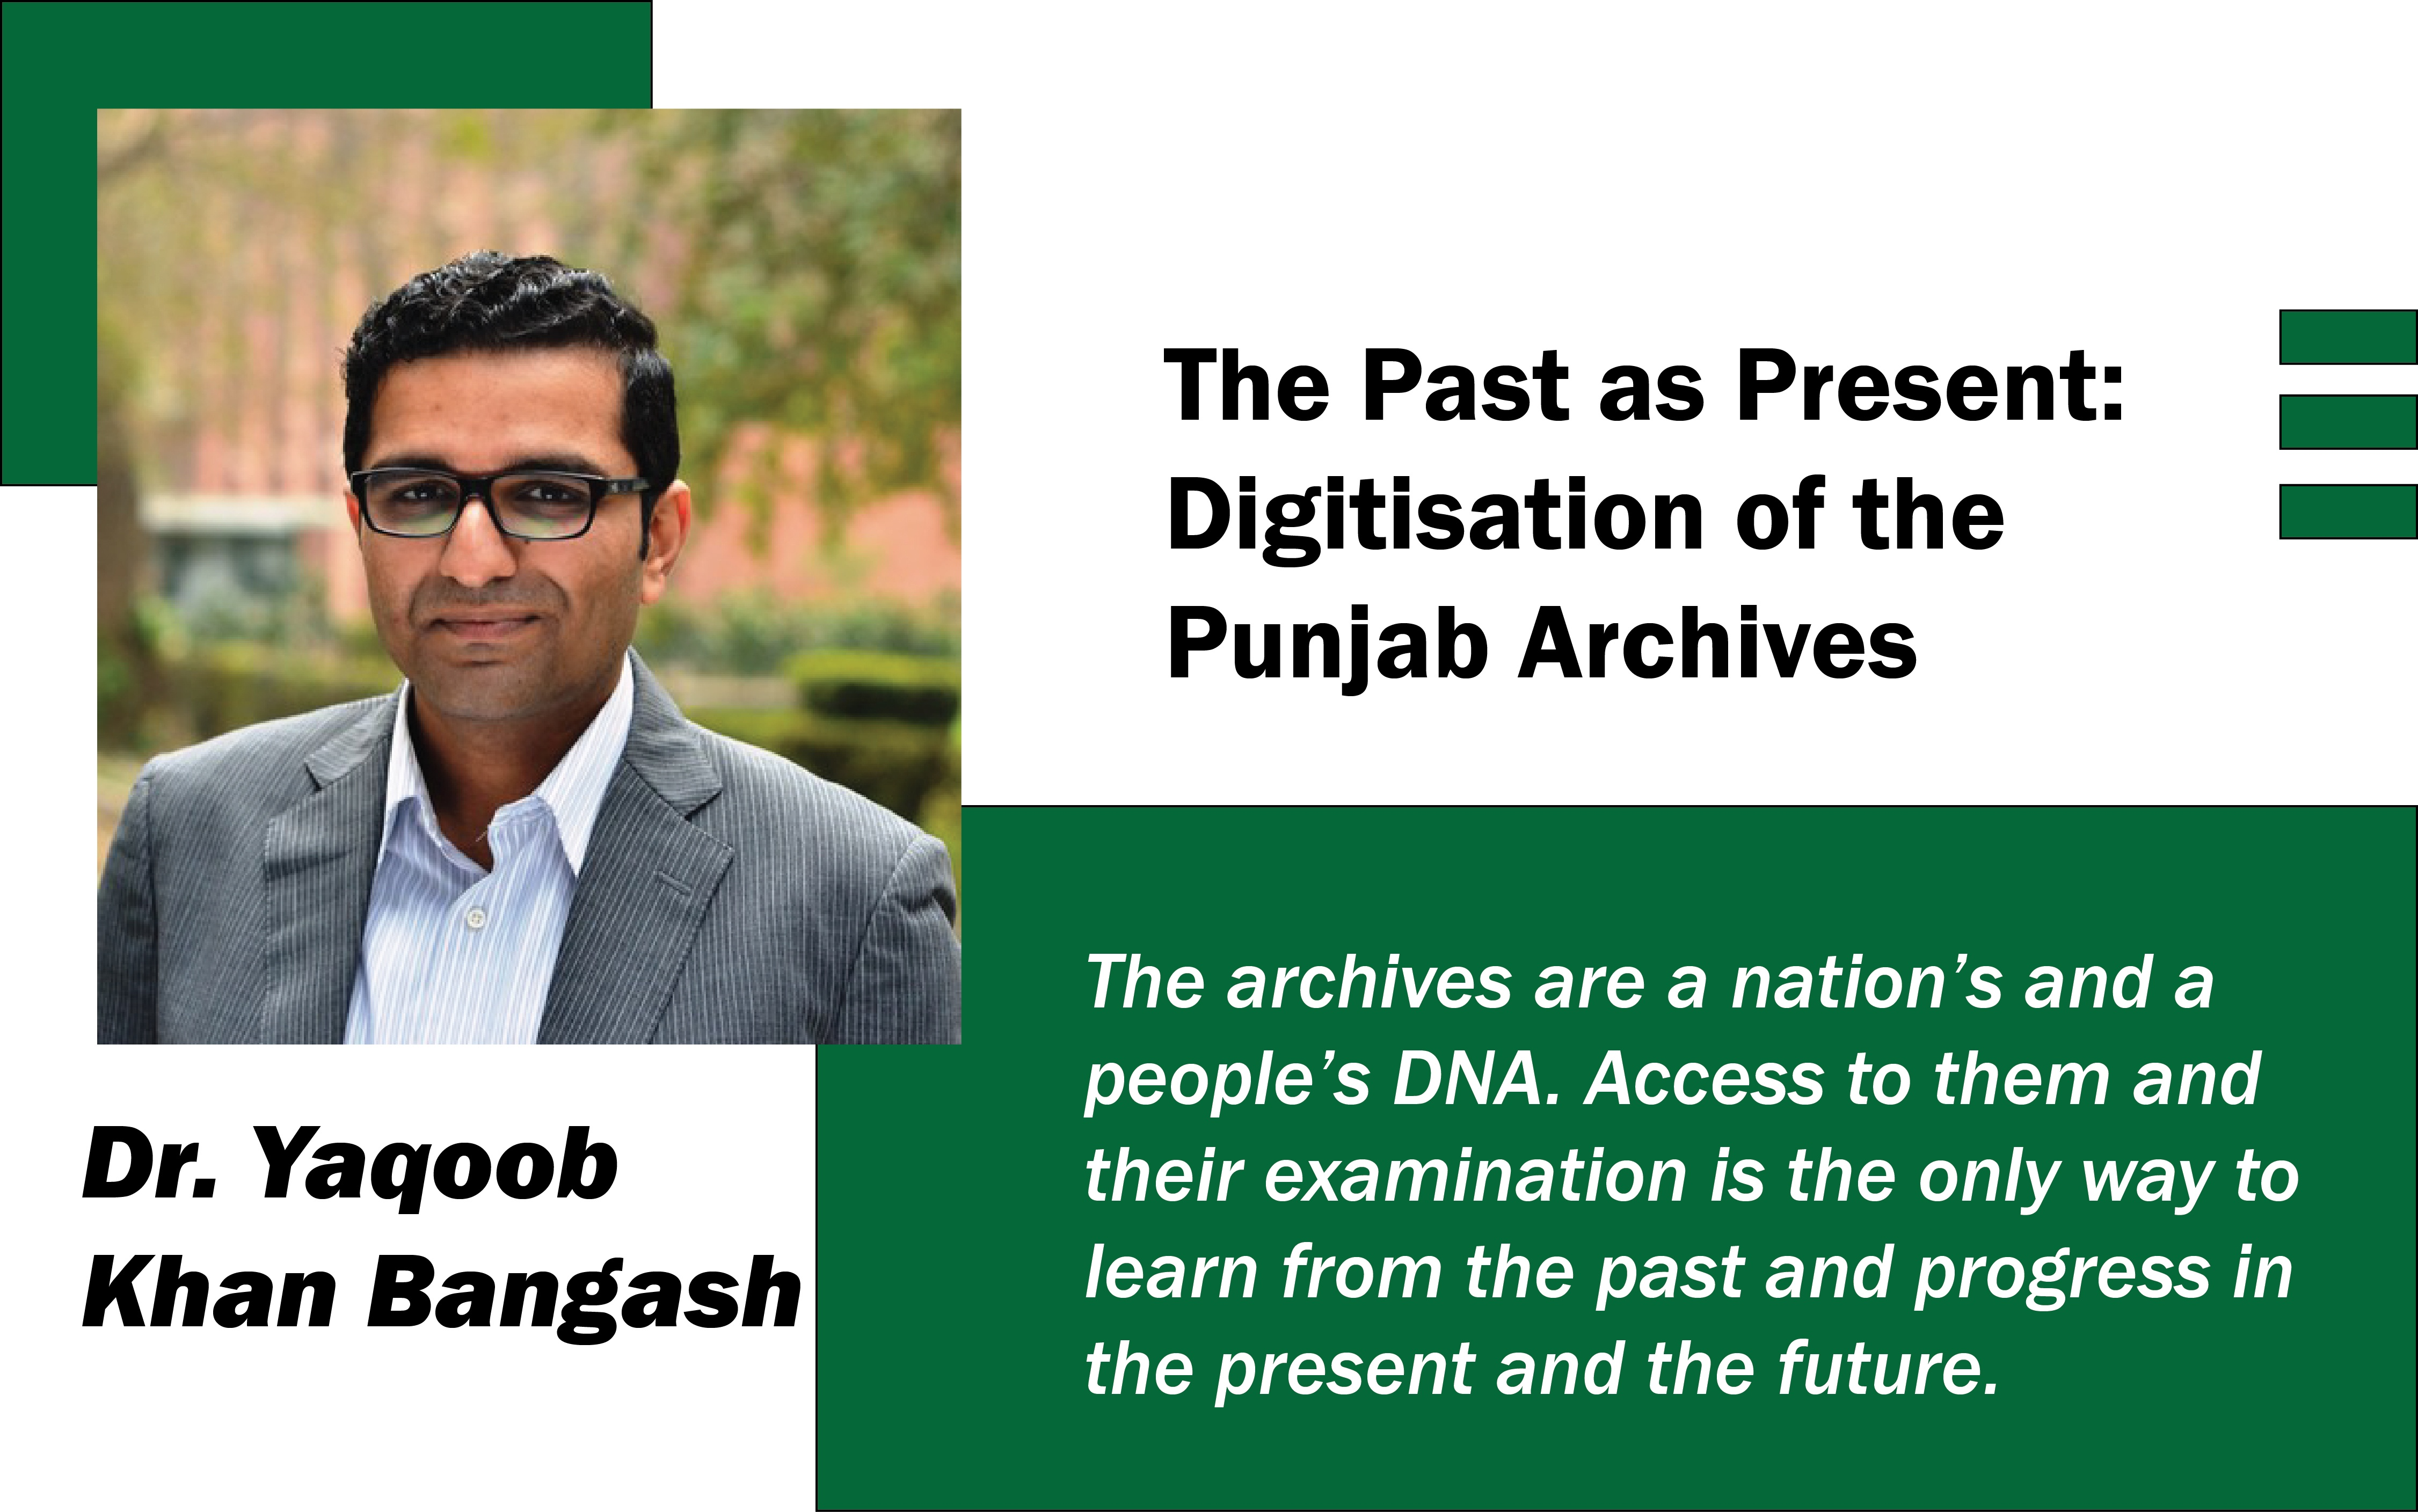 The Past as Present: DIGITIsATION of the Punjab Archives